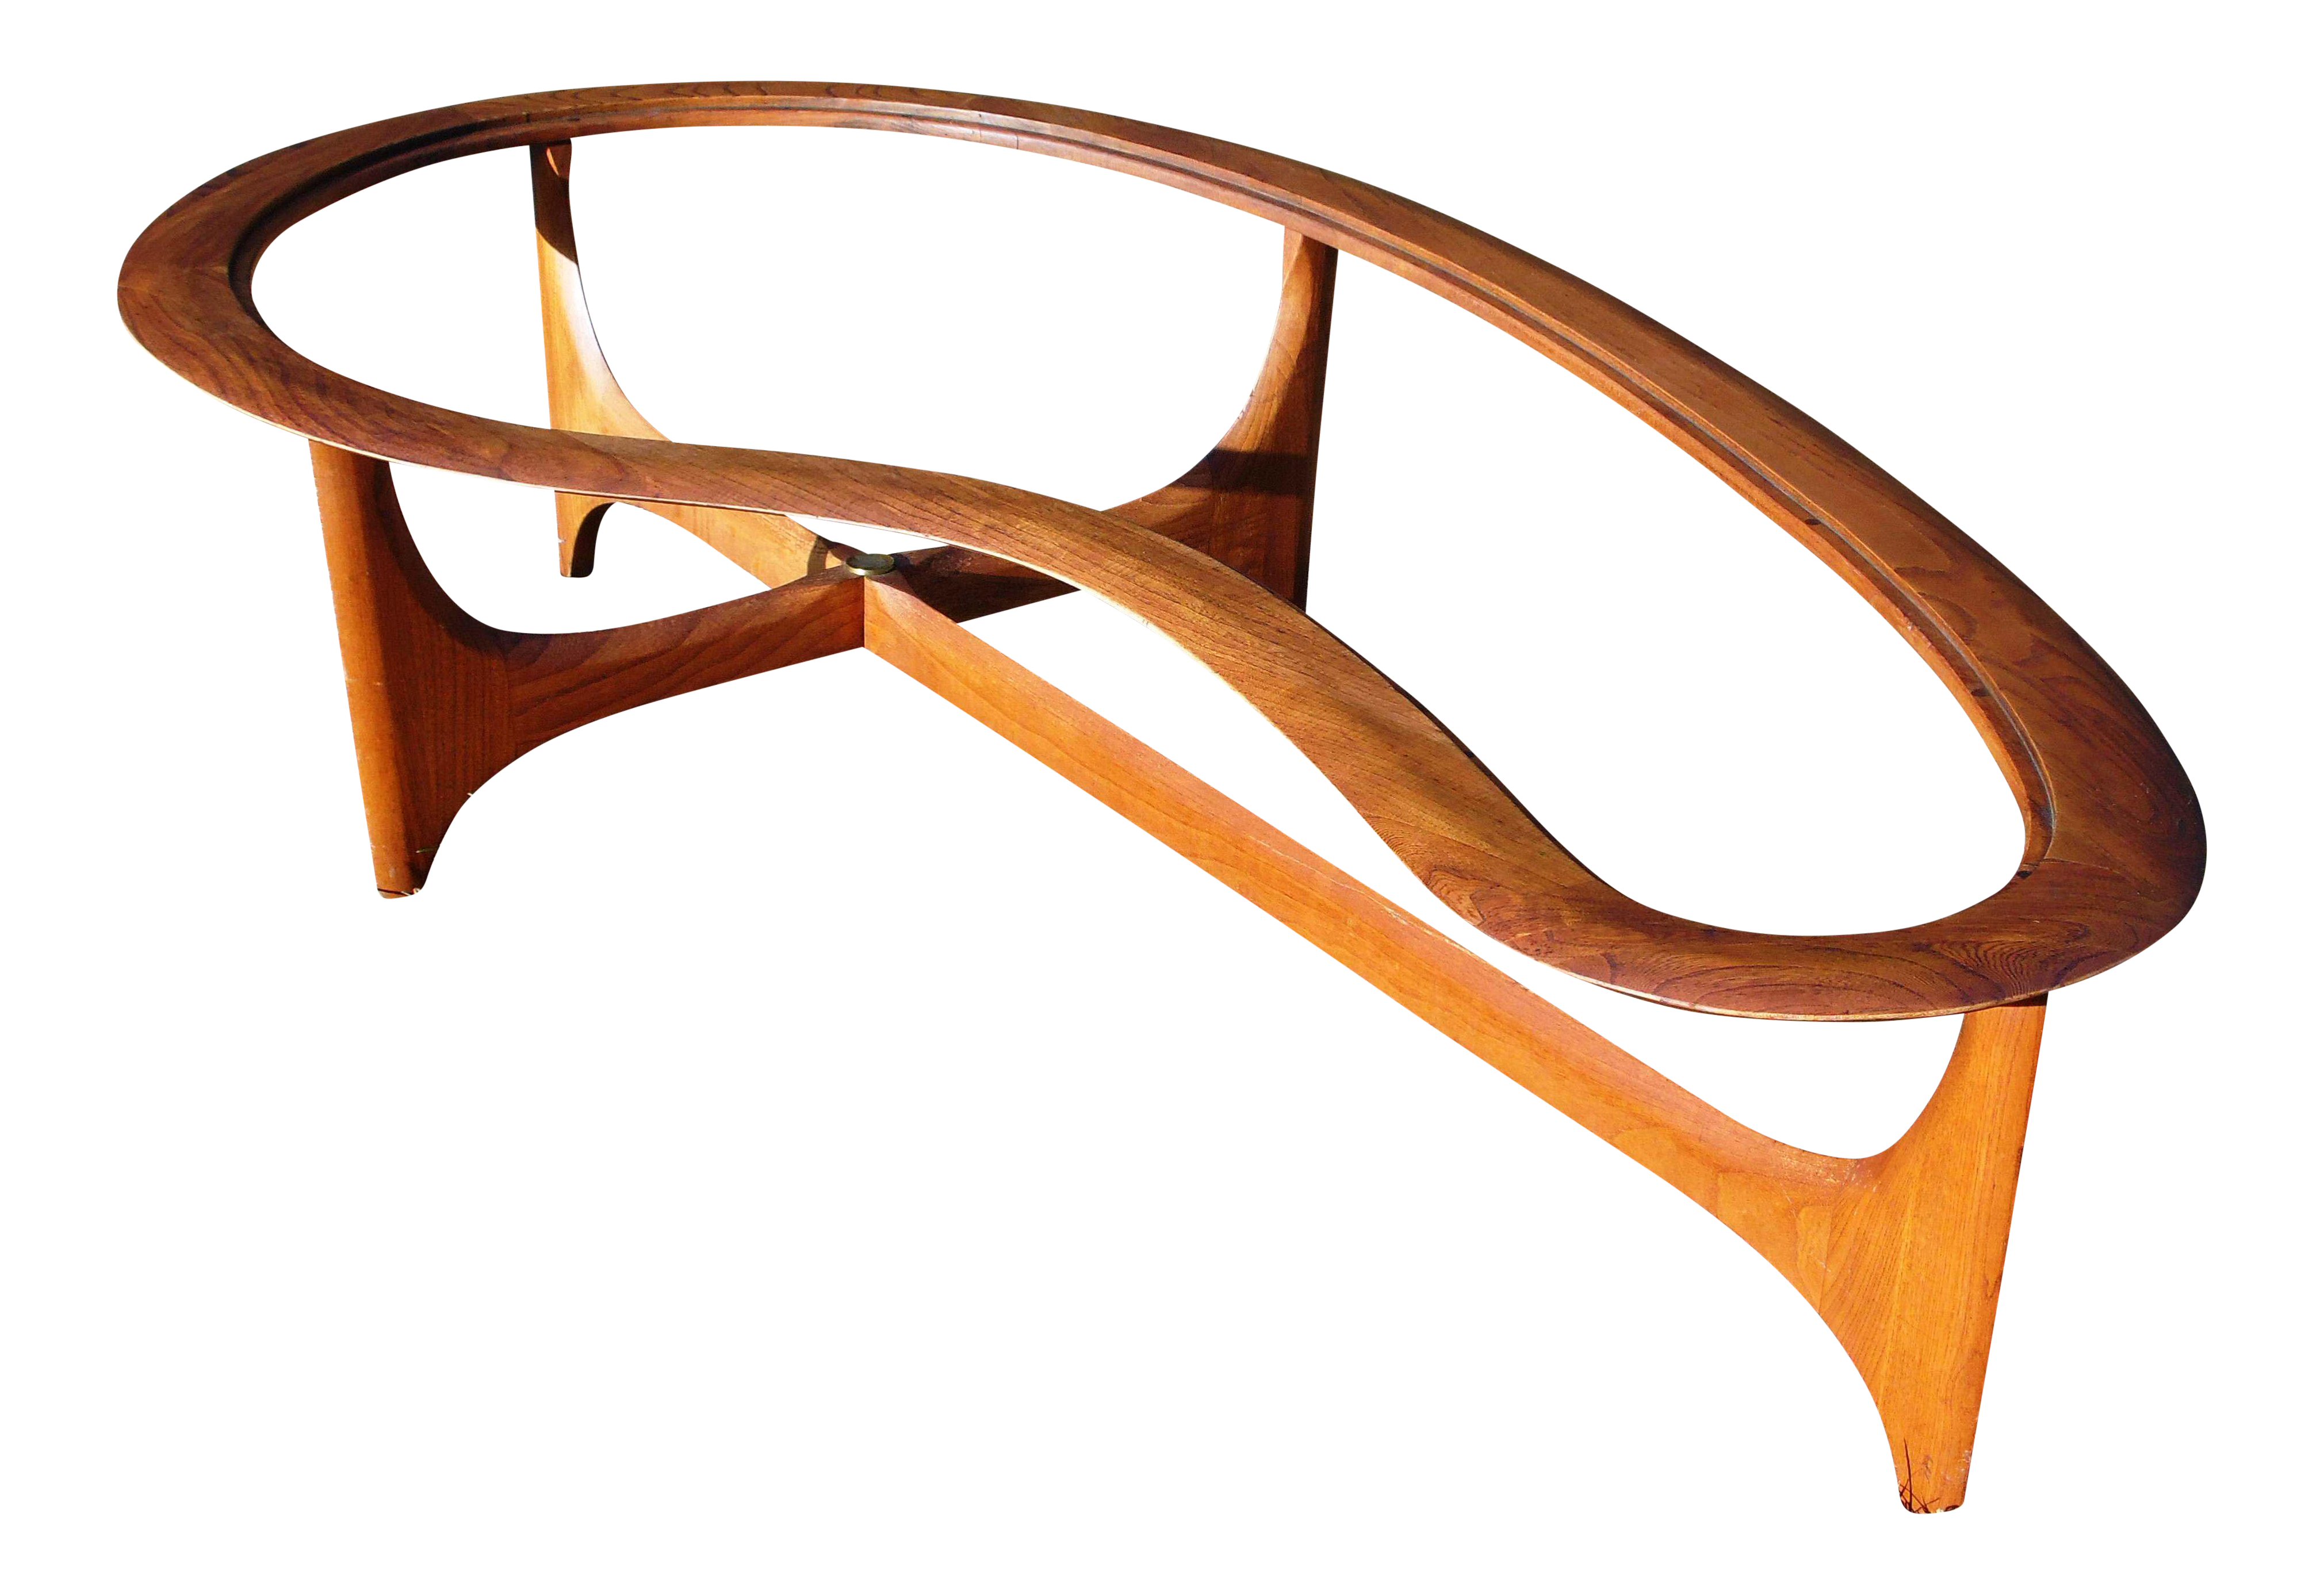 MidCentury Modern Biomorphic Coffee Table by Adrian Pearsall Chairish